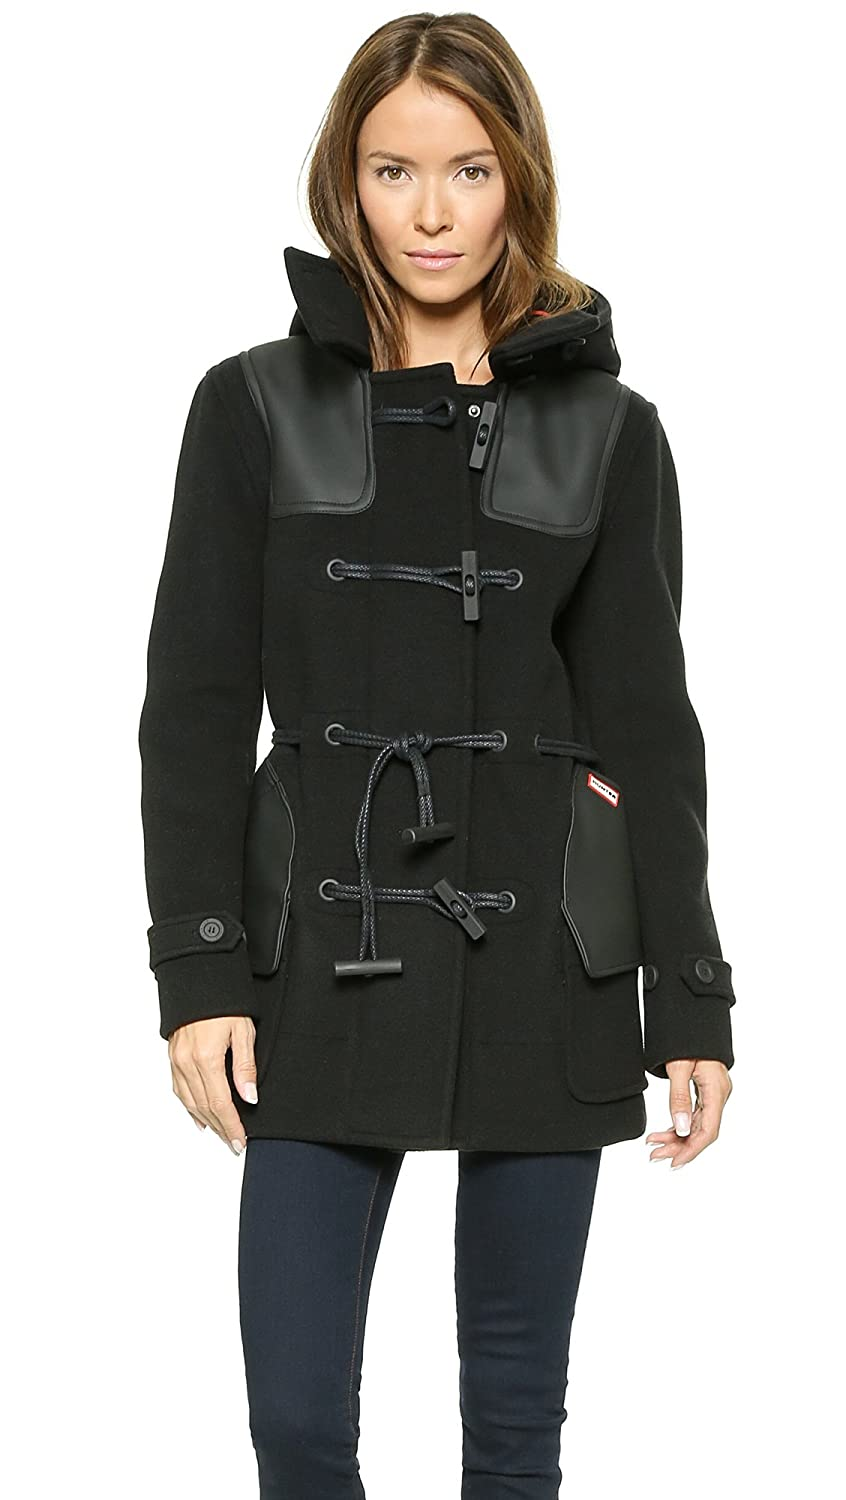 good HUNTER Jet Black Hooded Duffle Coat - ablenepal.com